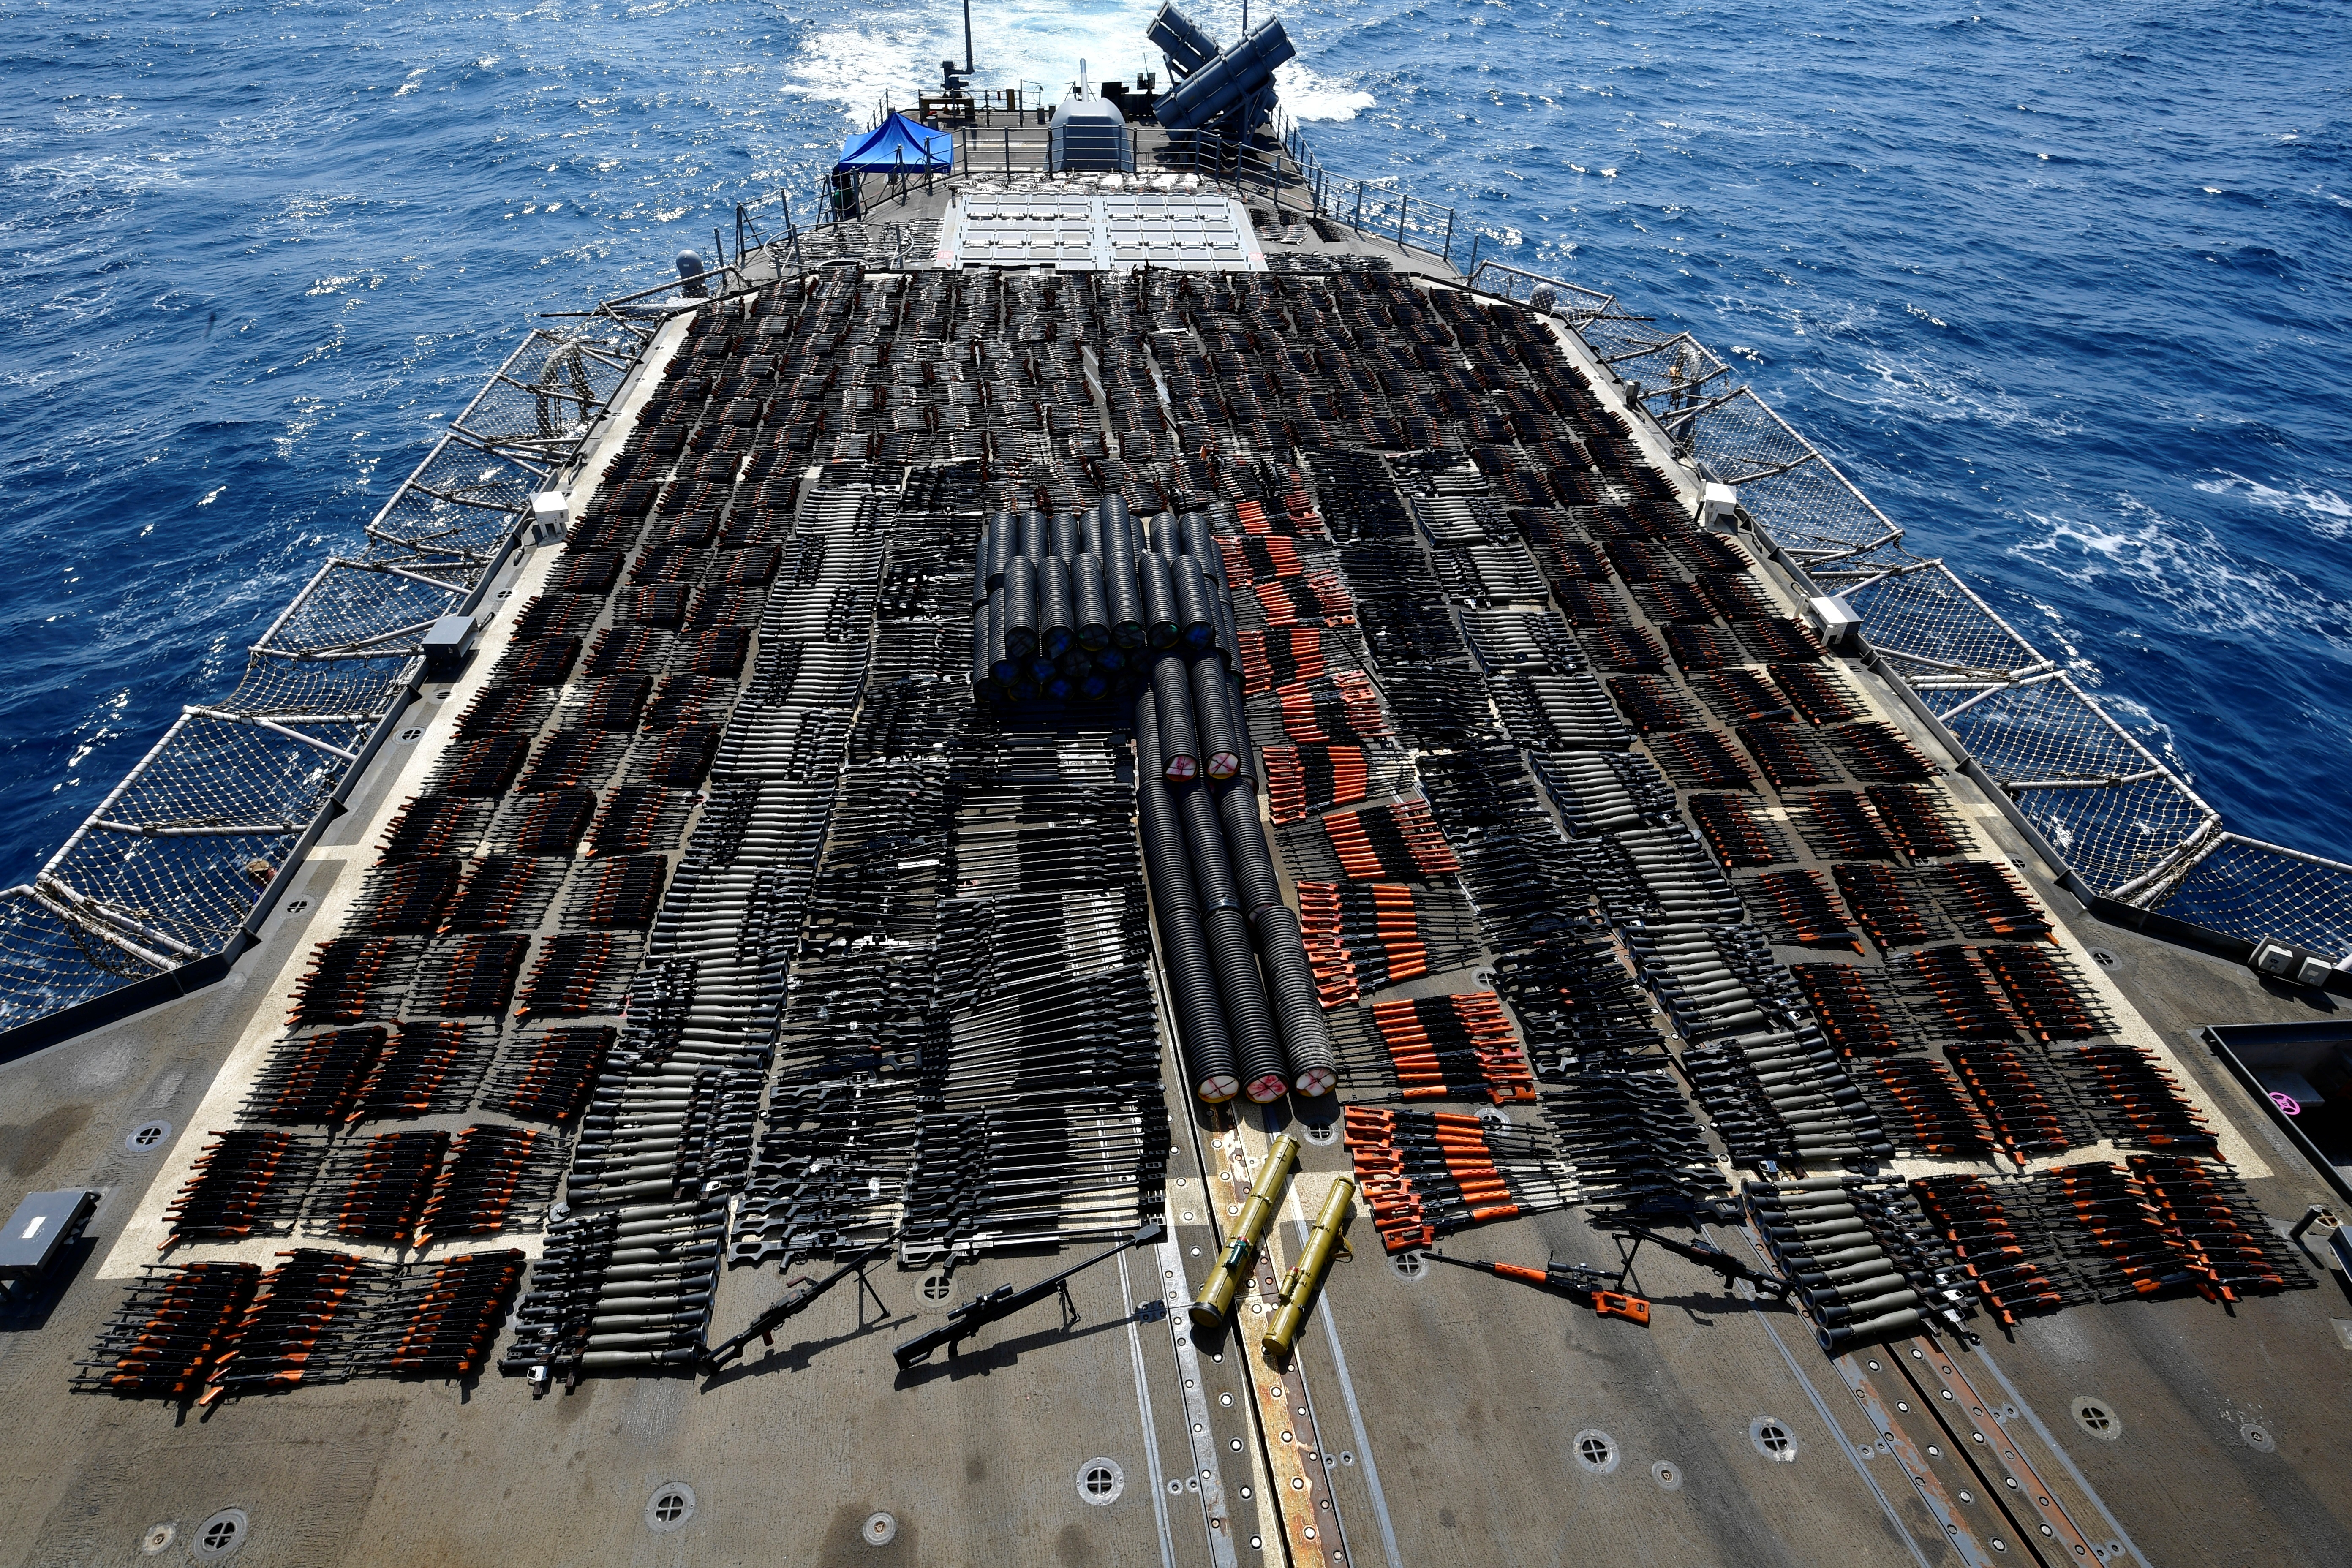 Thousands of illicit weapons are displayed onboard the guided-missile cruiser USS Monterey (CG 61) which was seized from a stateless dhow in international waters of the North Arabian Sea in this picture taken on May 8, 2021 and released by U.S.Navy on May 9, 2021. U.S. Navy Forces Central Command/U.S. Navy/Handout via REUTERS